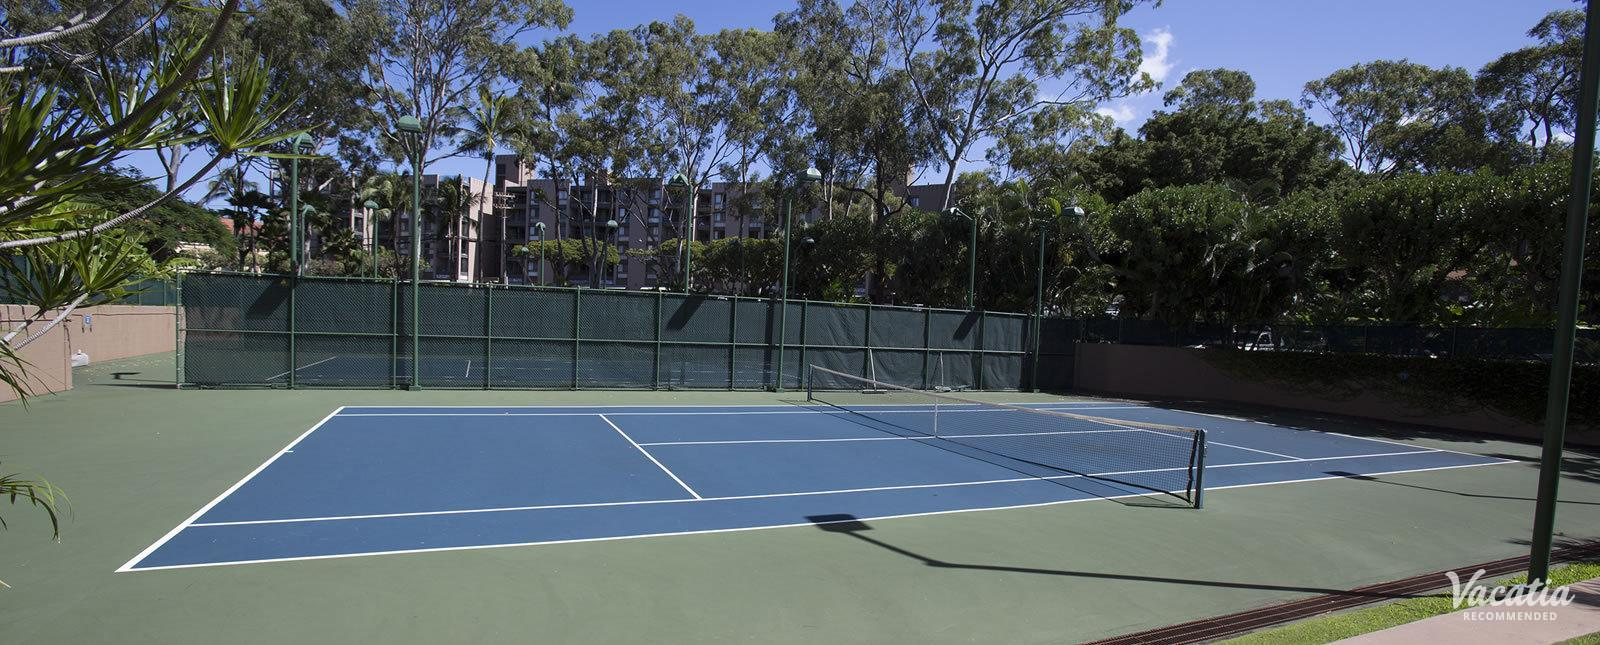 Sands of Kahana tennis courts games